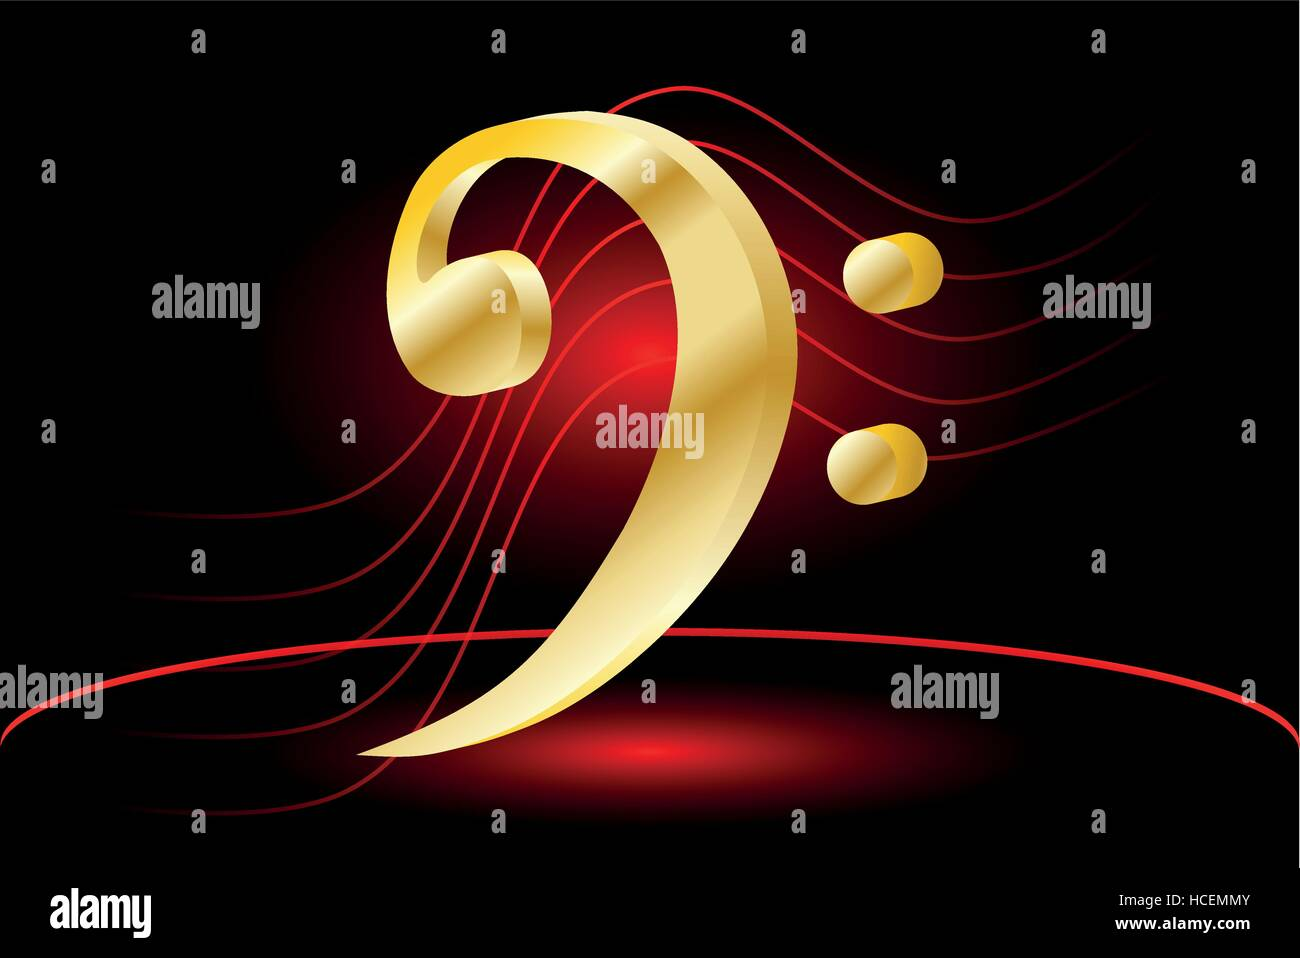 Bass Clef Stock Photos Amp Bass Clef Stock Images